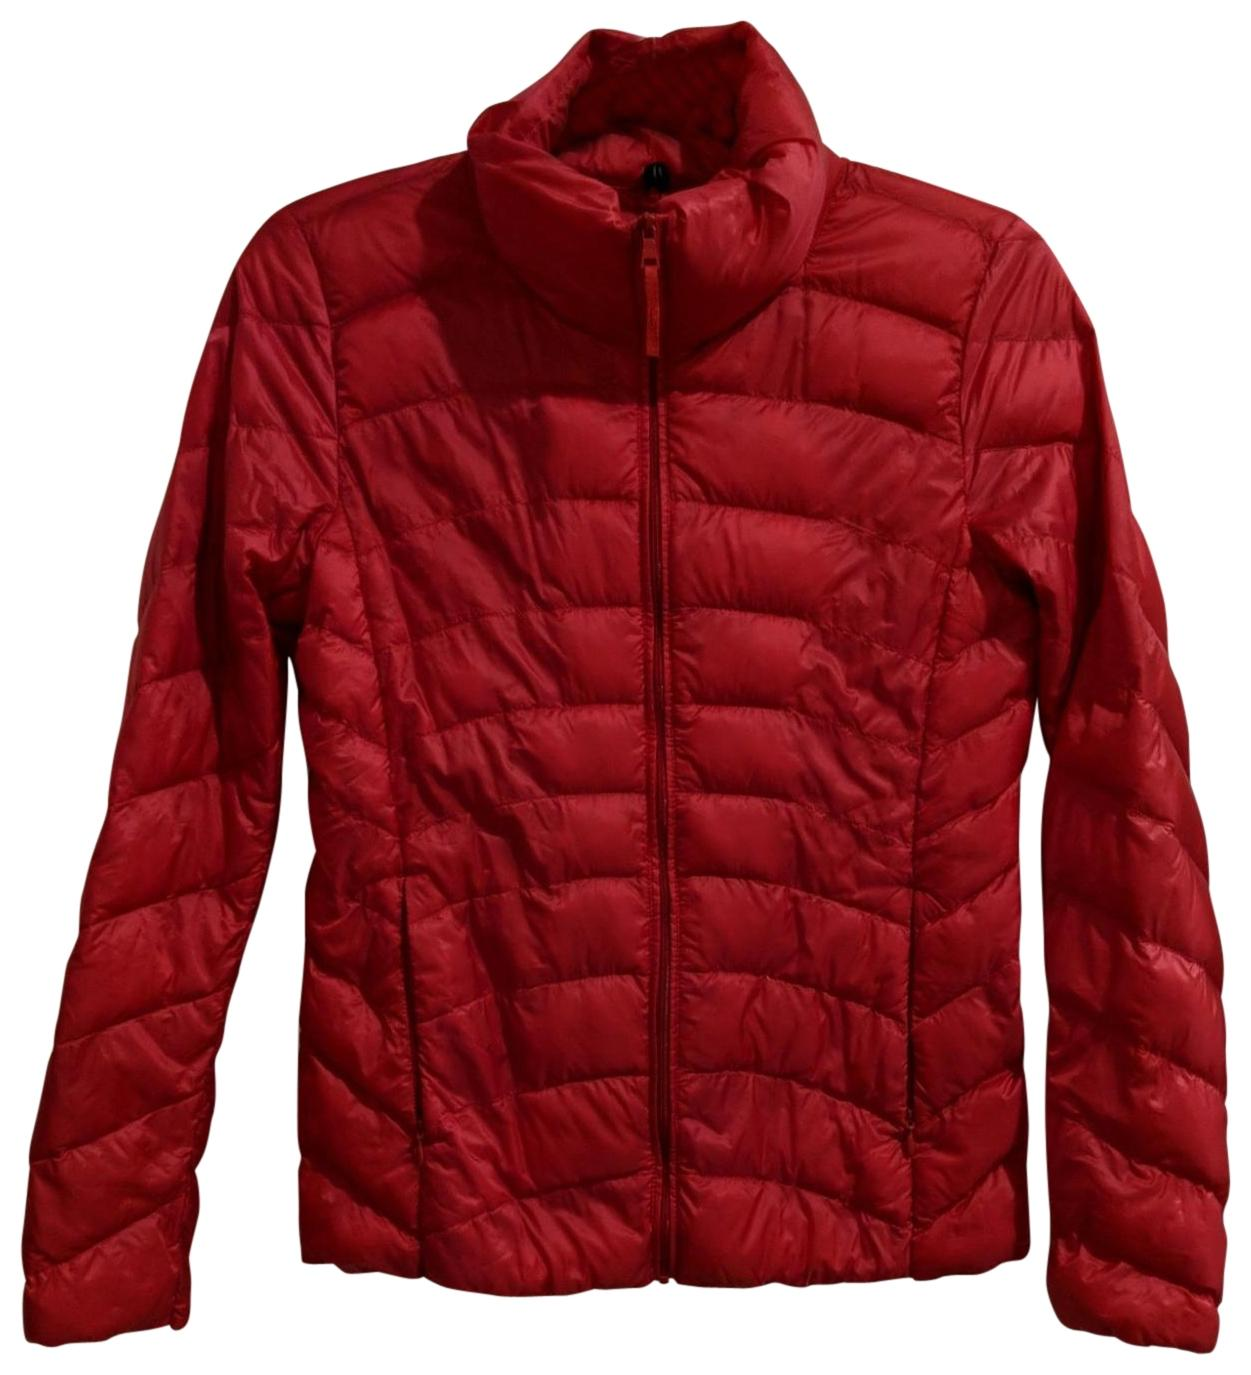 Uniqlo Ultra Light Down Jacket Puffer Coat ...